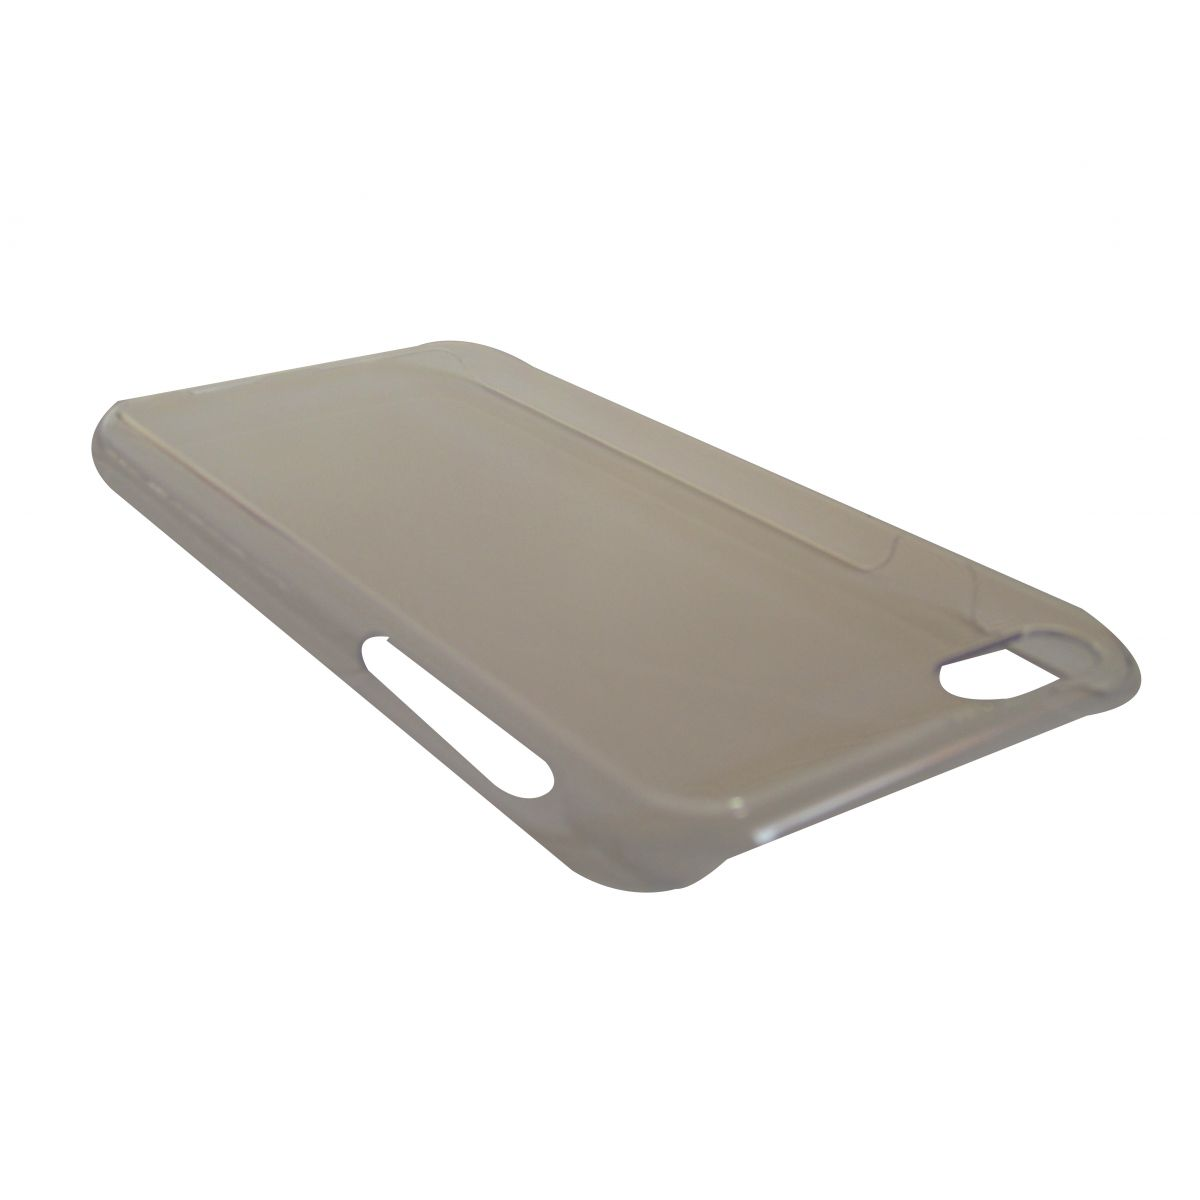 Capa Nuance Para Iphone 6 Intelimix Transparente